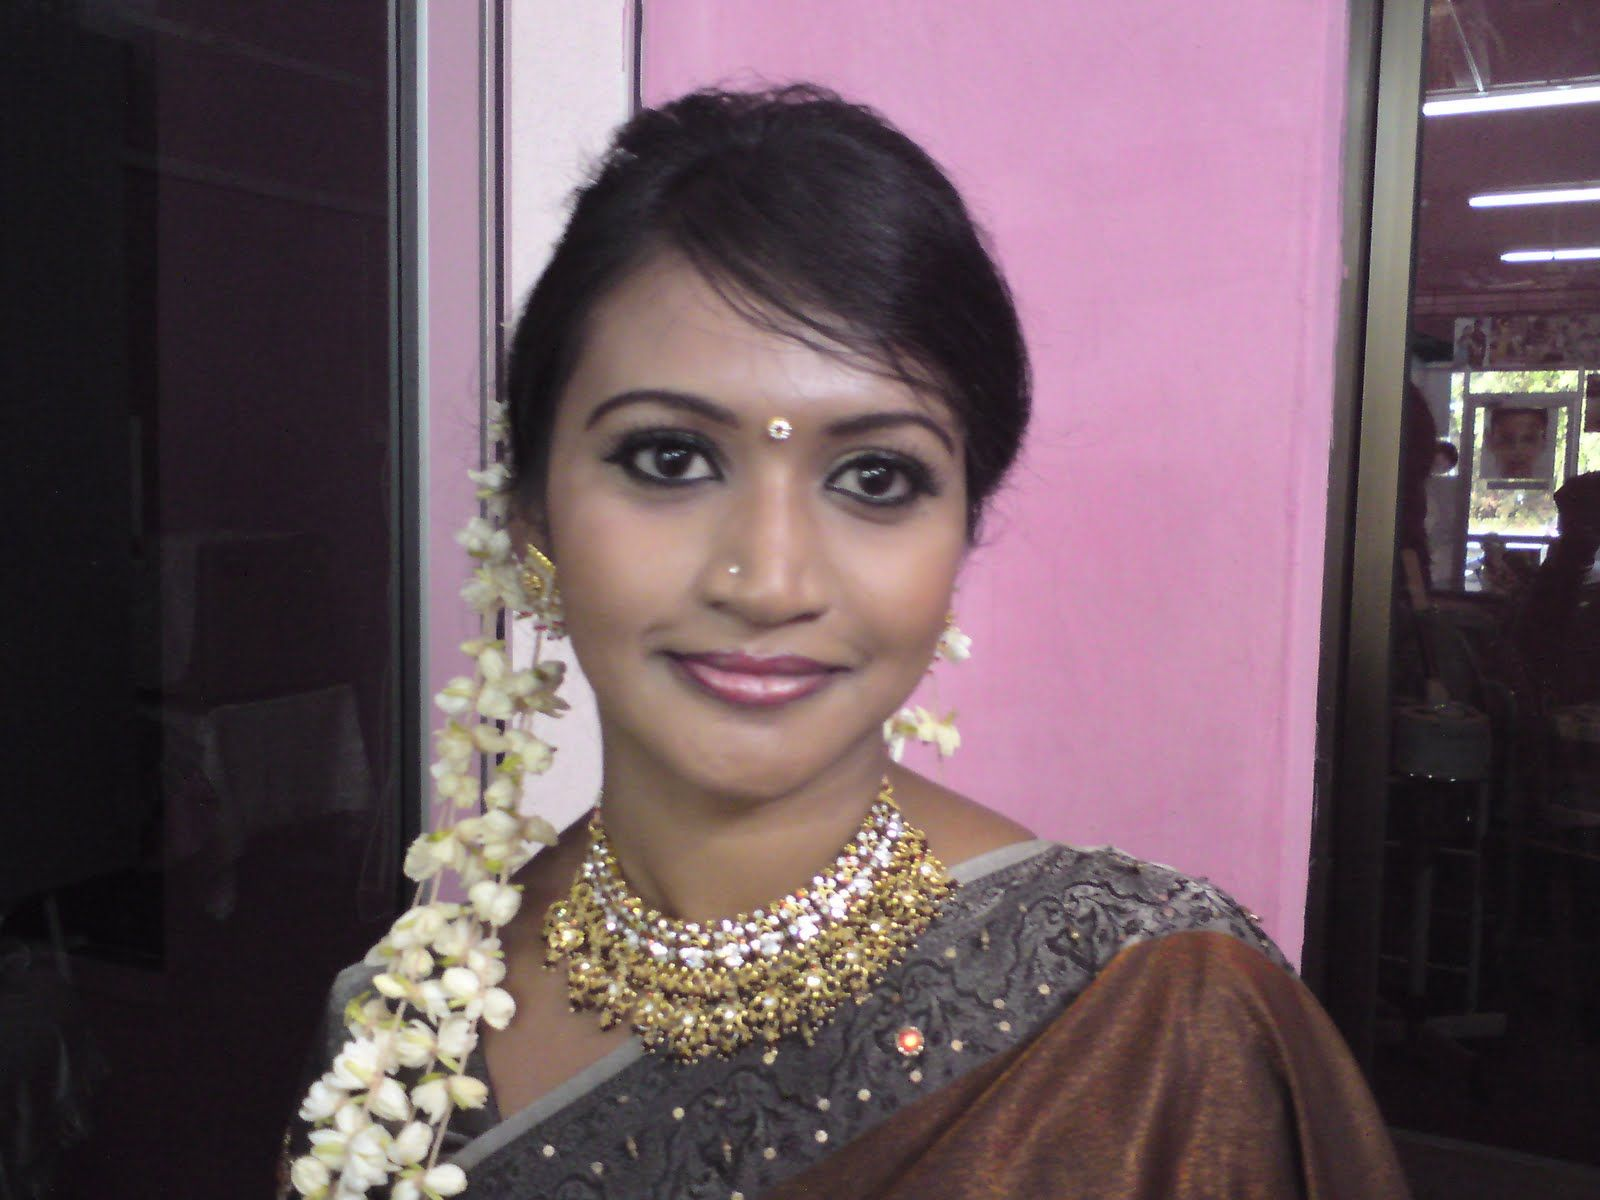 Simple Tamil Bridal Plait Hairstyle With Jasmine Flowers | Indian ...